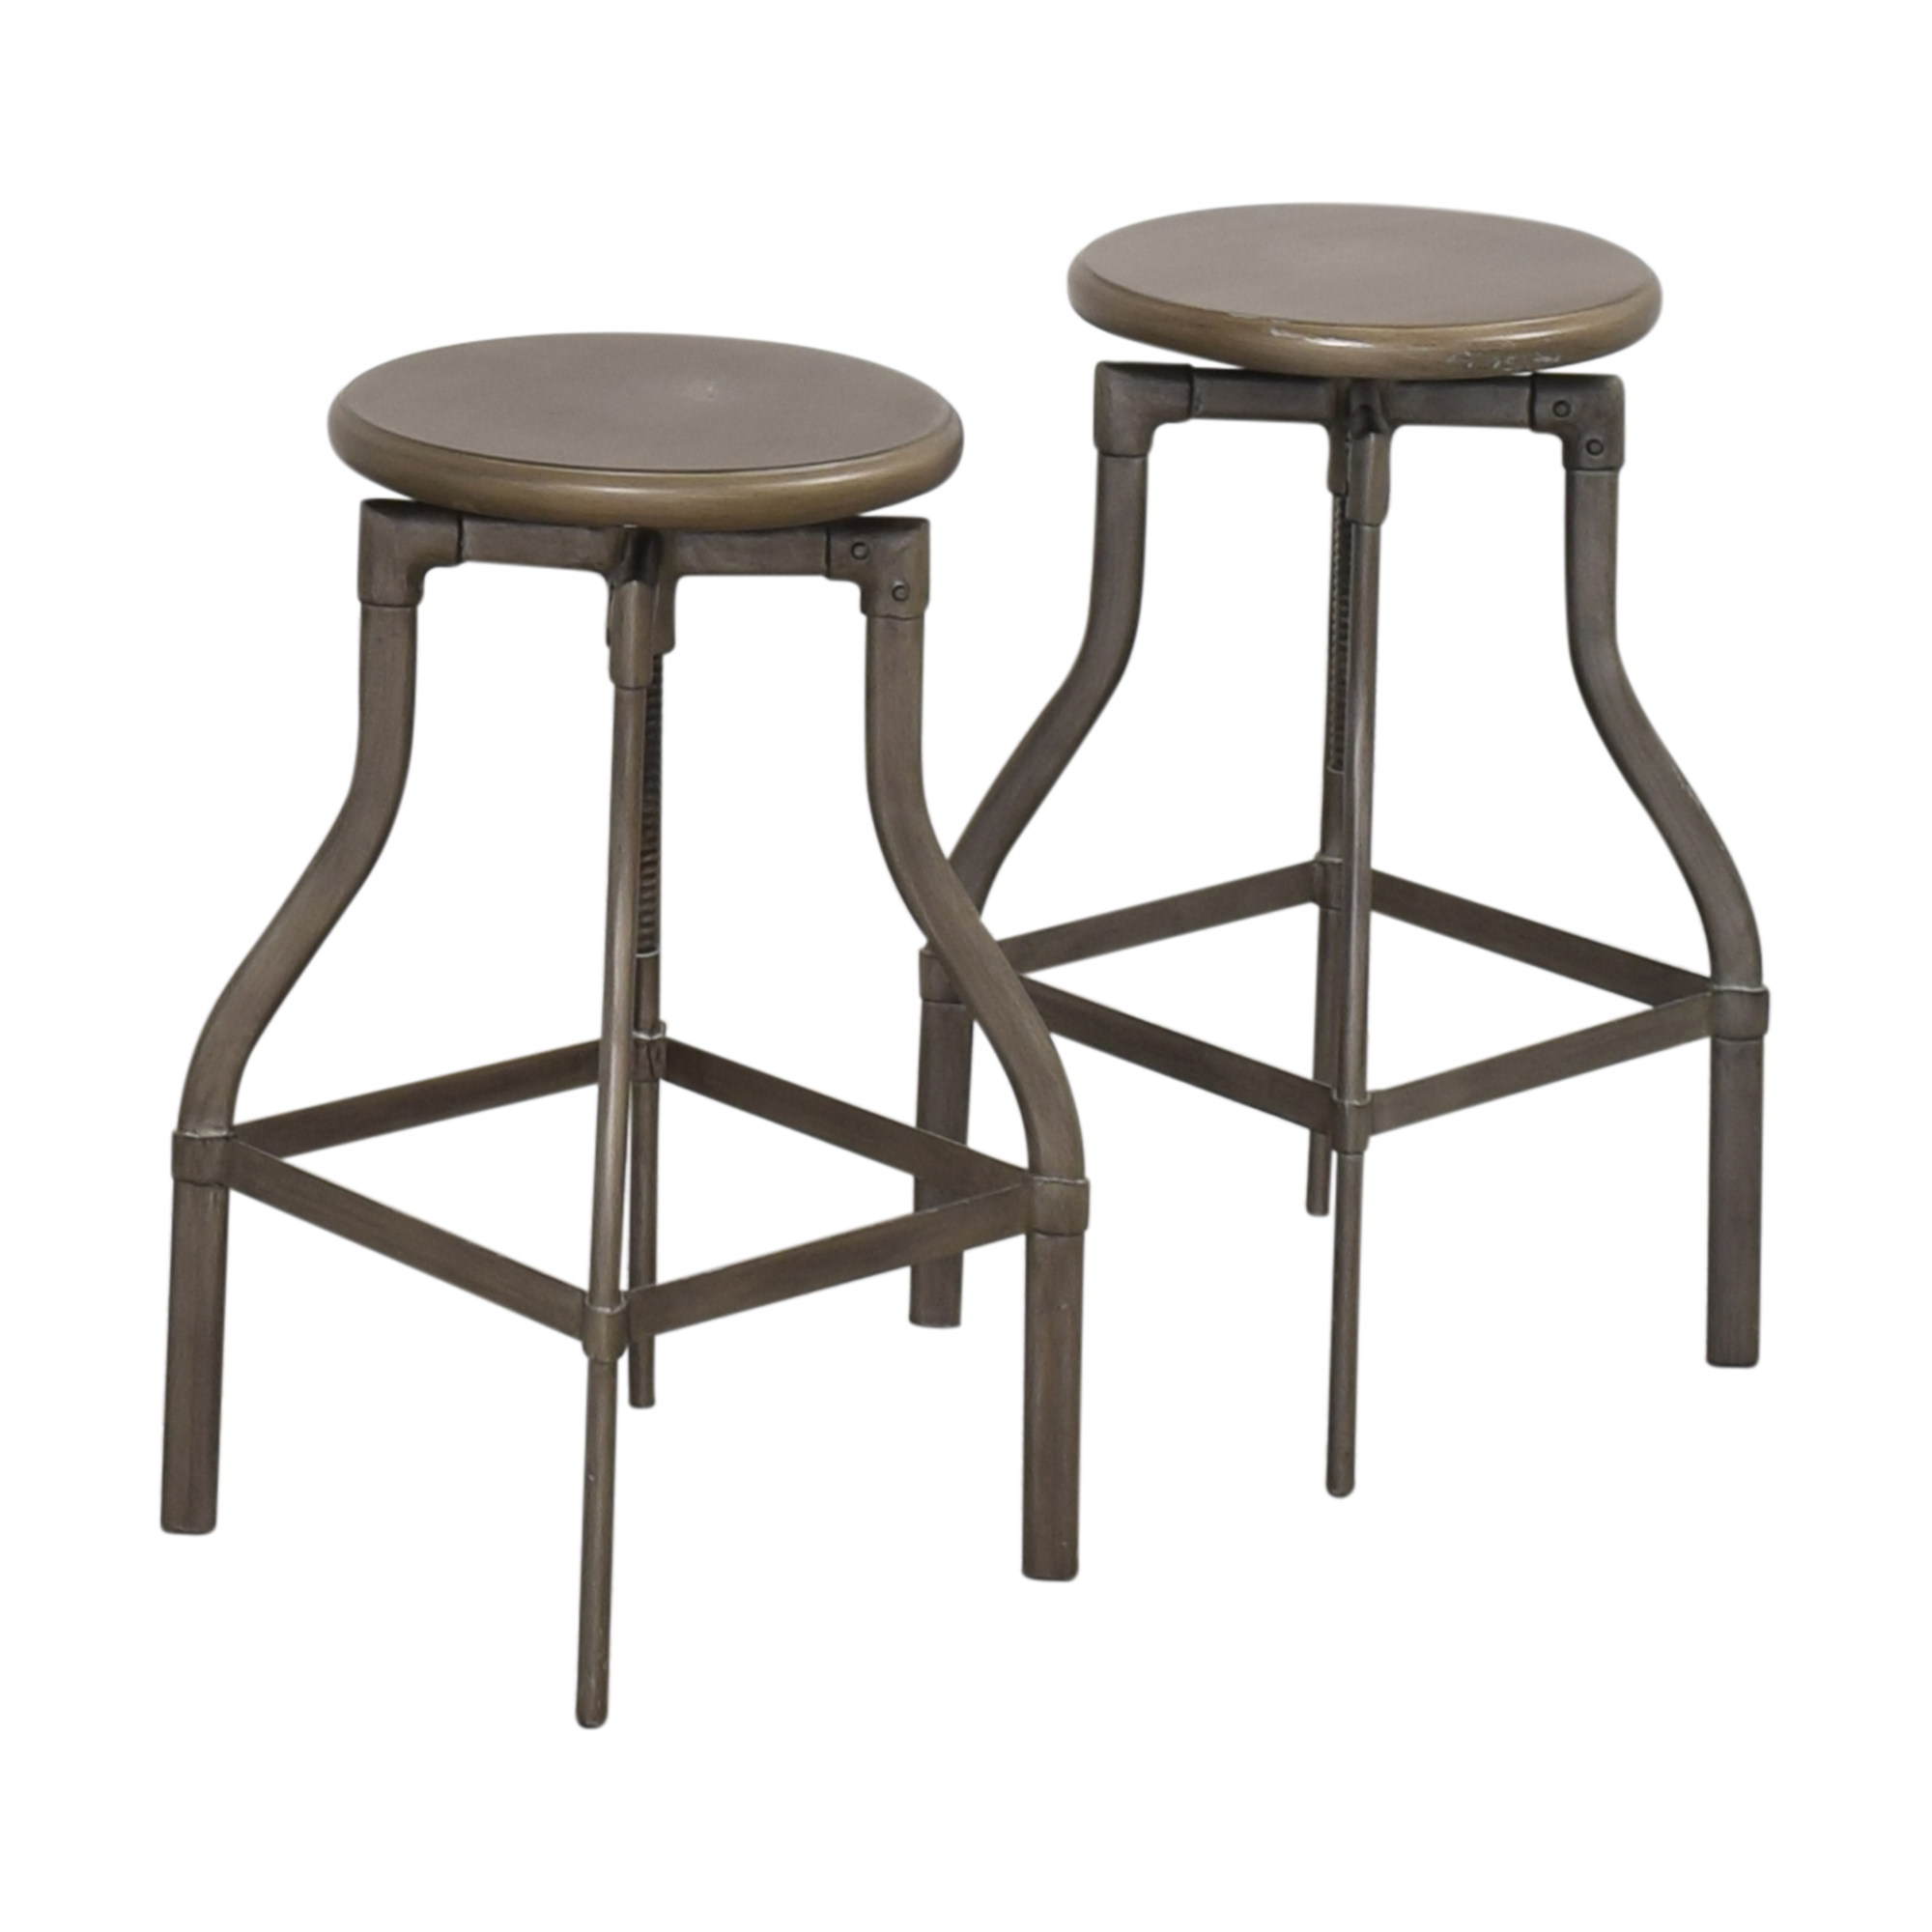 shop Crate & Barrel Turner Adjustable Stools Crate & Barrel Stools